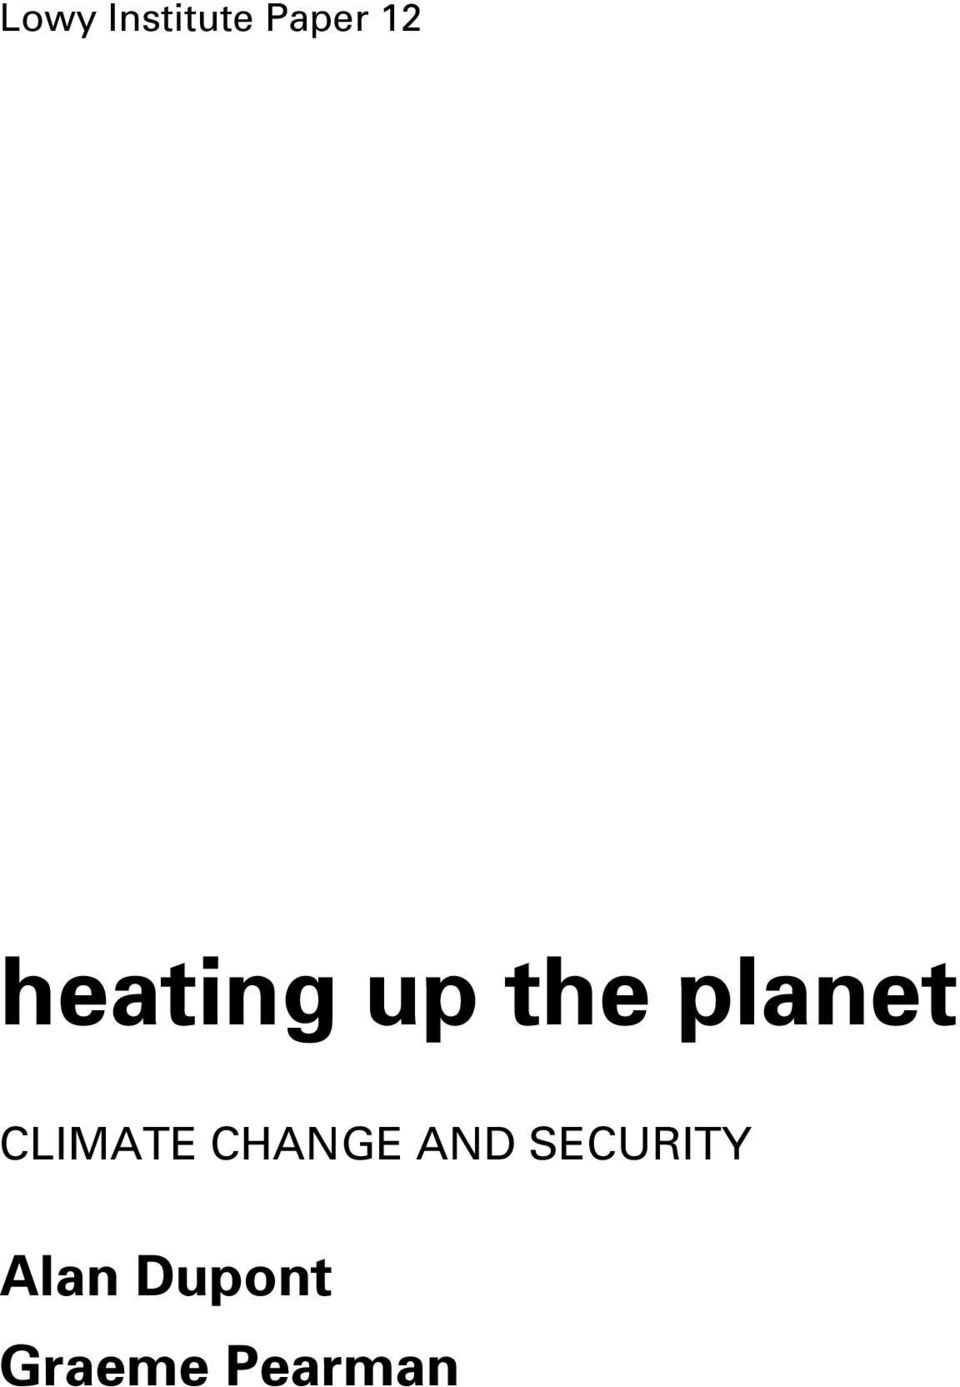 CLIMATE CHANGE AND